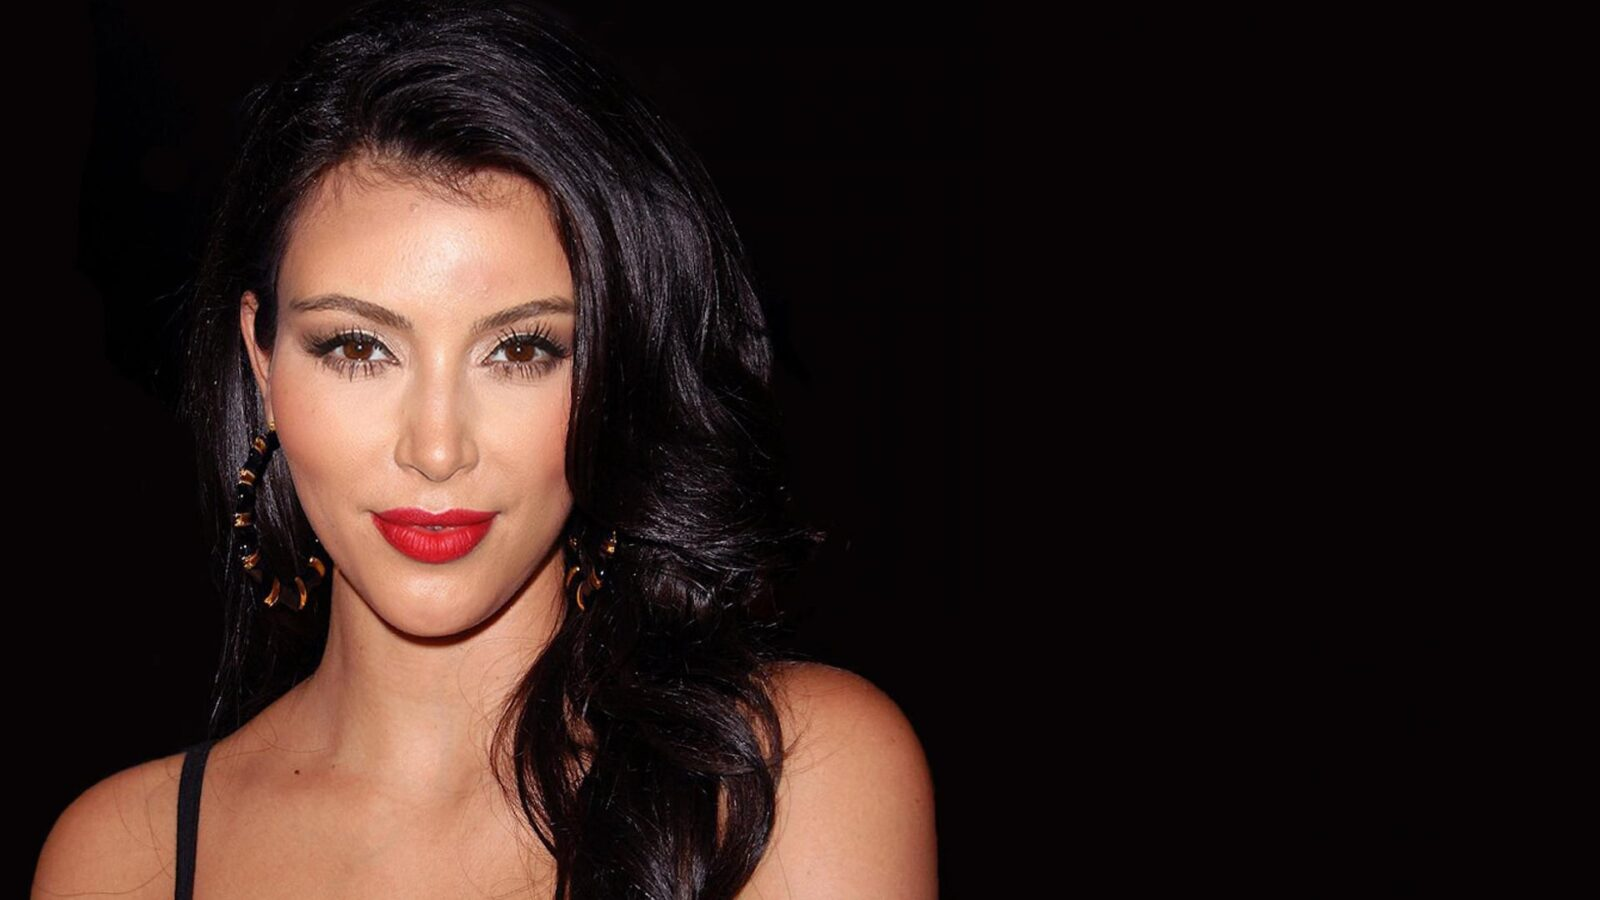 kim kardashian hd wallpapers free download